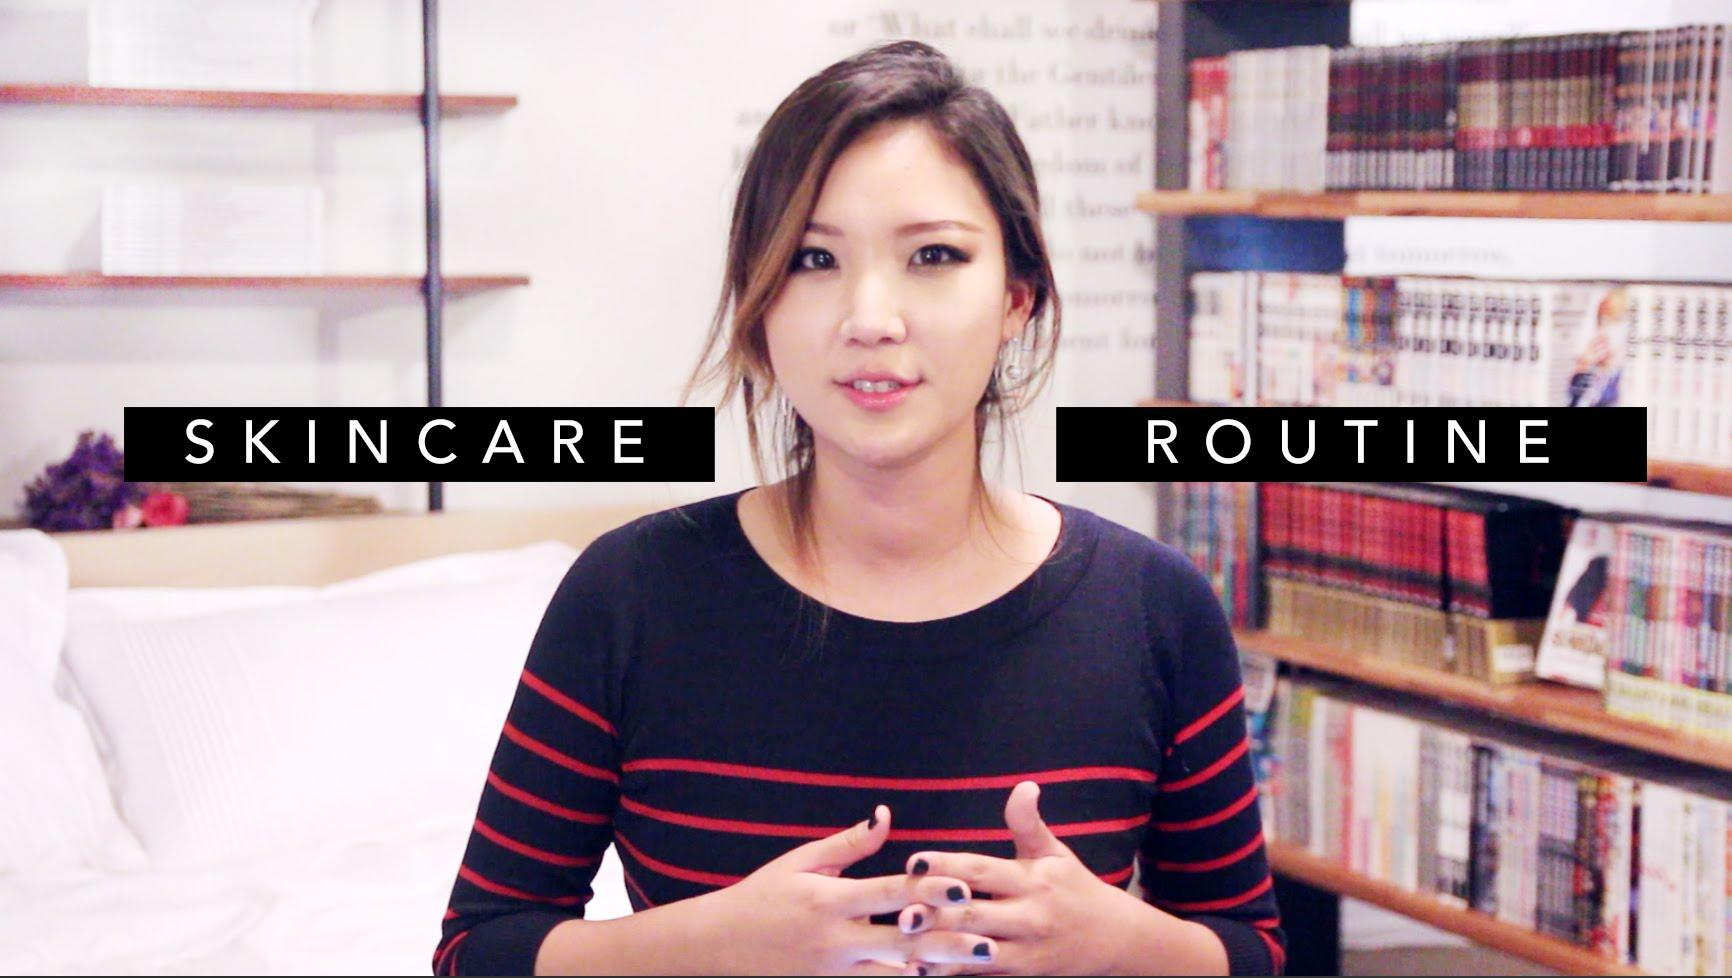 Krave Beauty: Celebrity Liah Yoo's Skincare Line Promises to Simplify Your  Skincare Routine!